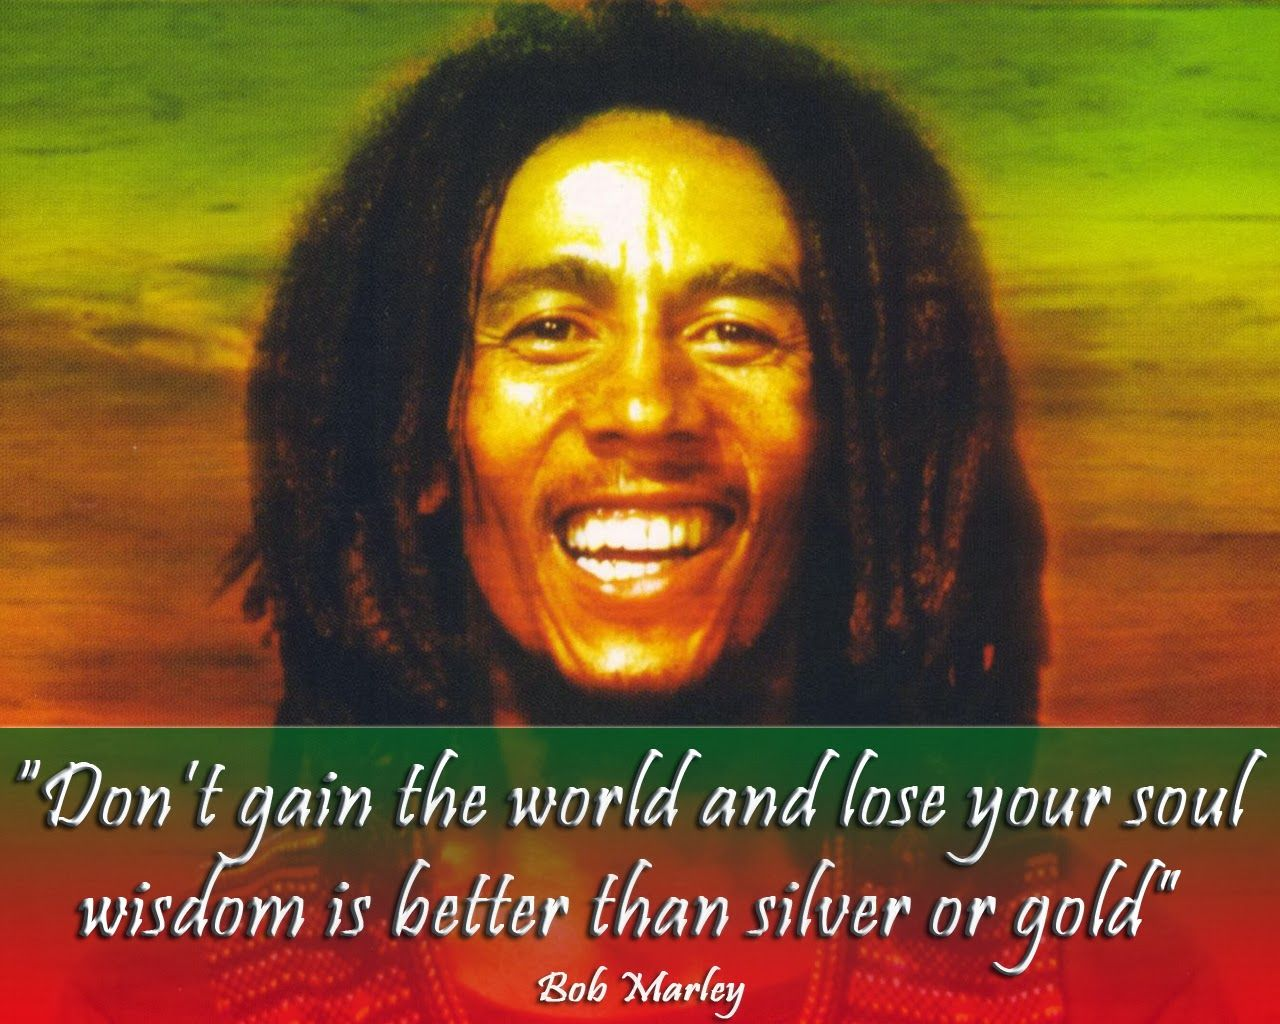 BobMarley OM Aquarius born February 6 was a Jamaican reggae singer songwriter